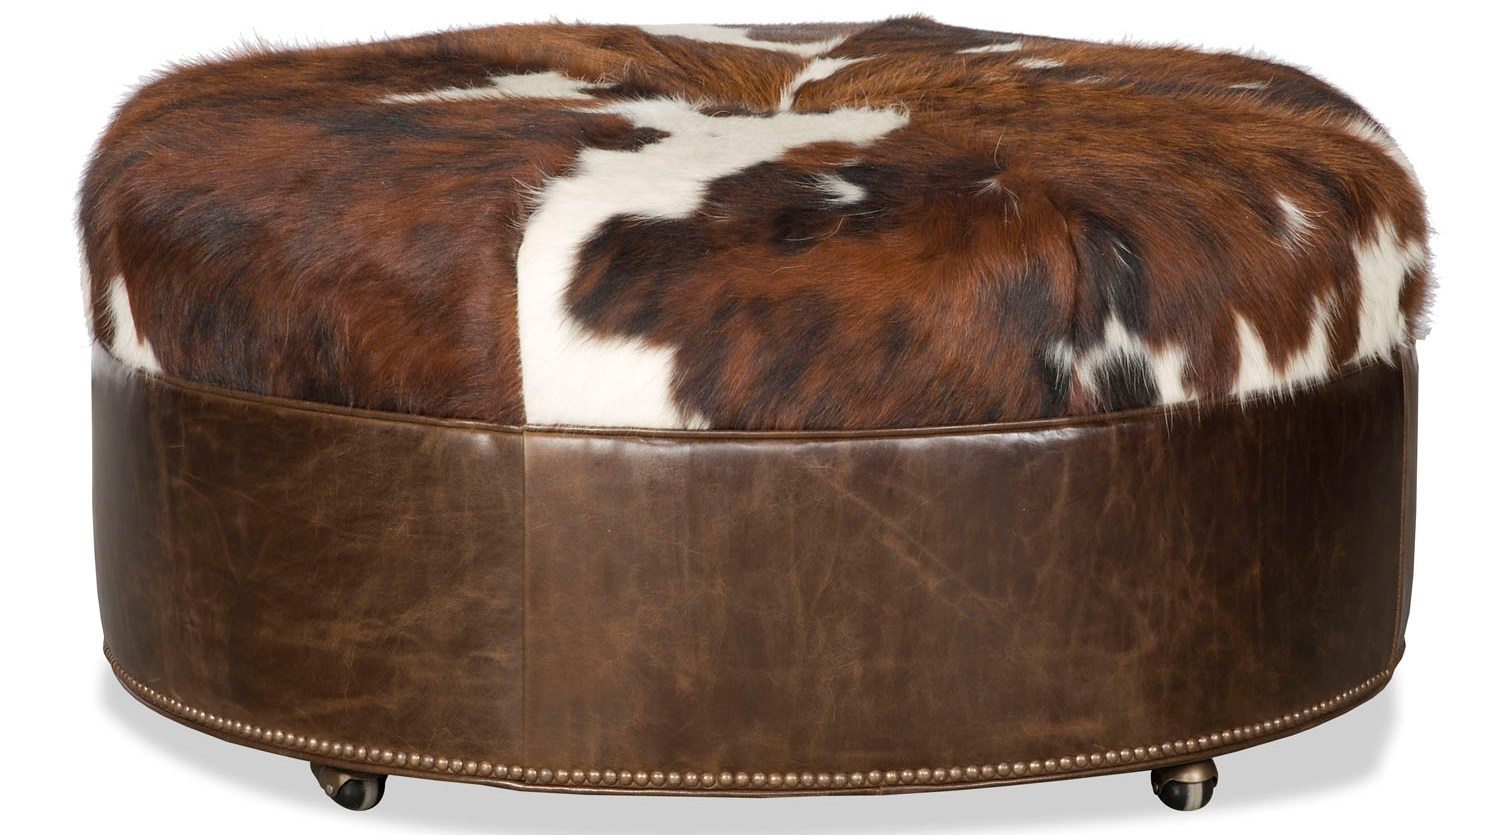 Brown leather ottoman - Luxury Leather Upholstered Furniture Brown Leather Ottoman Tool With Fur Top